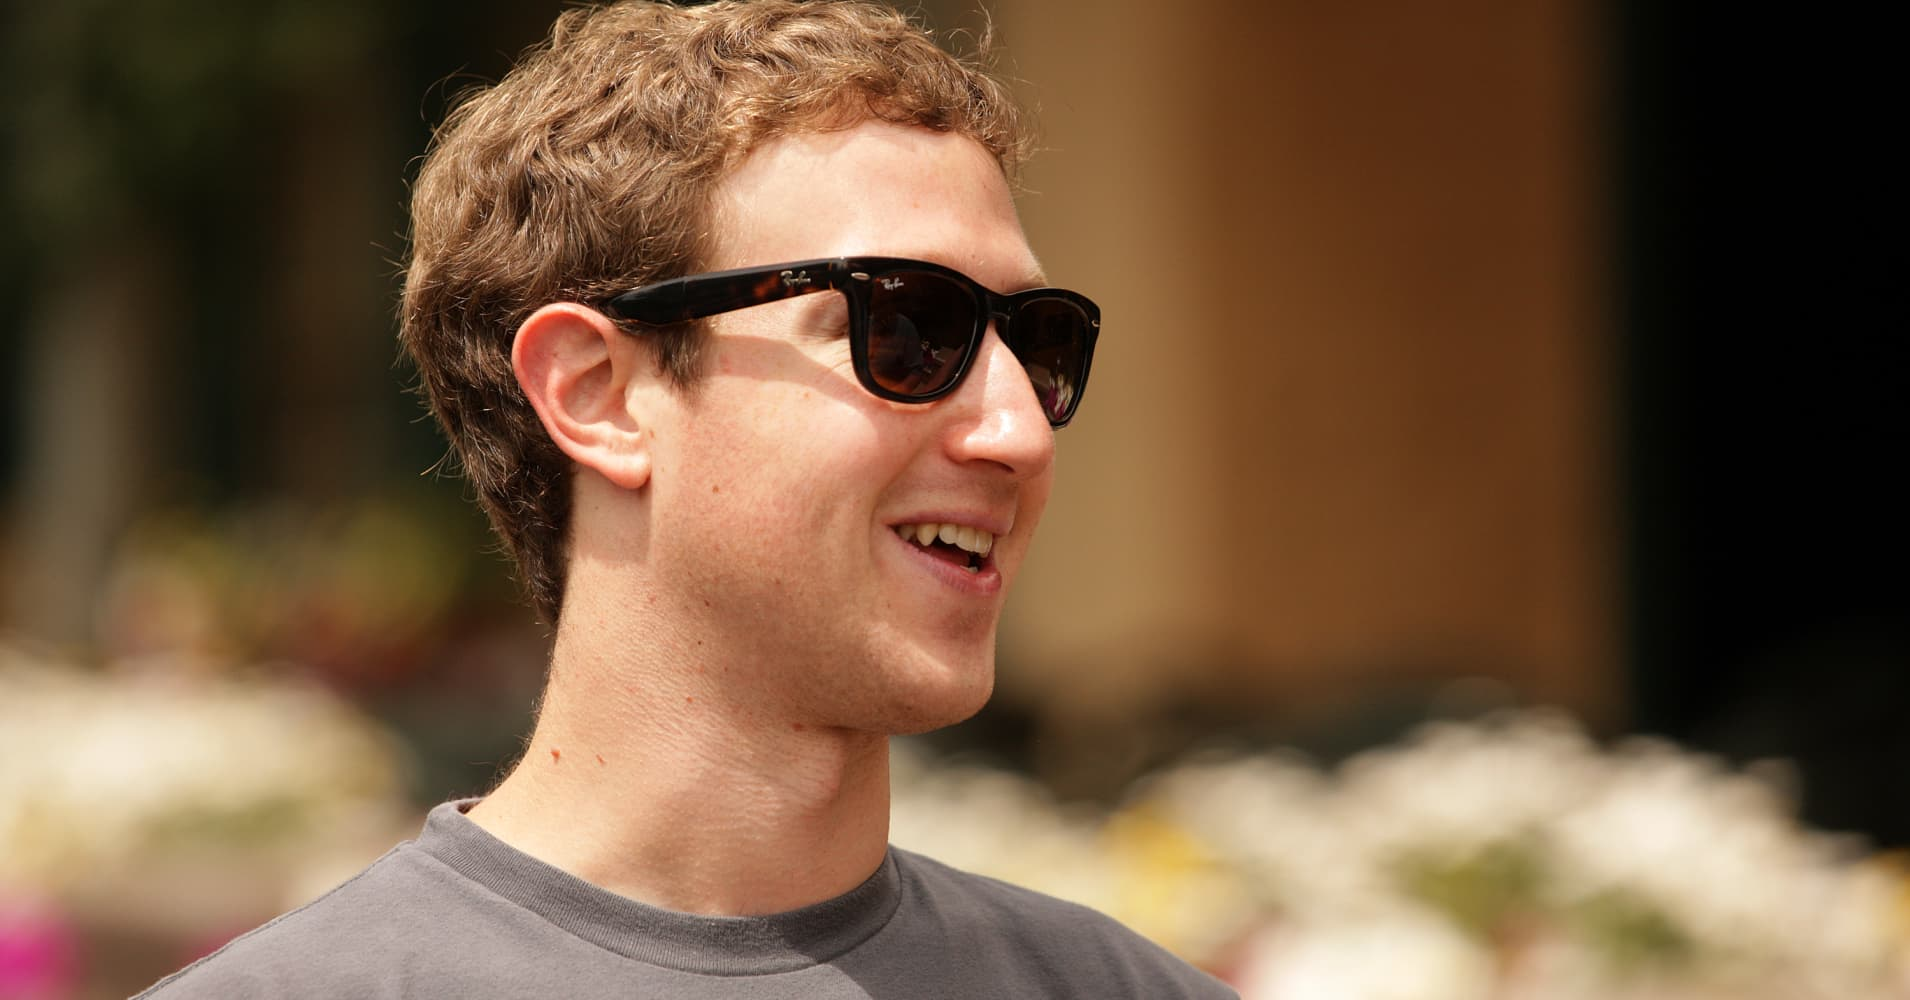 No lei! — Facebook\'s Zuckerberg sues hundreds of Hawaiians to force property sales to him